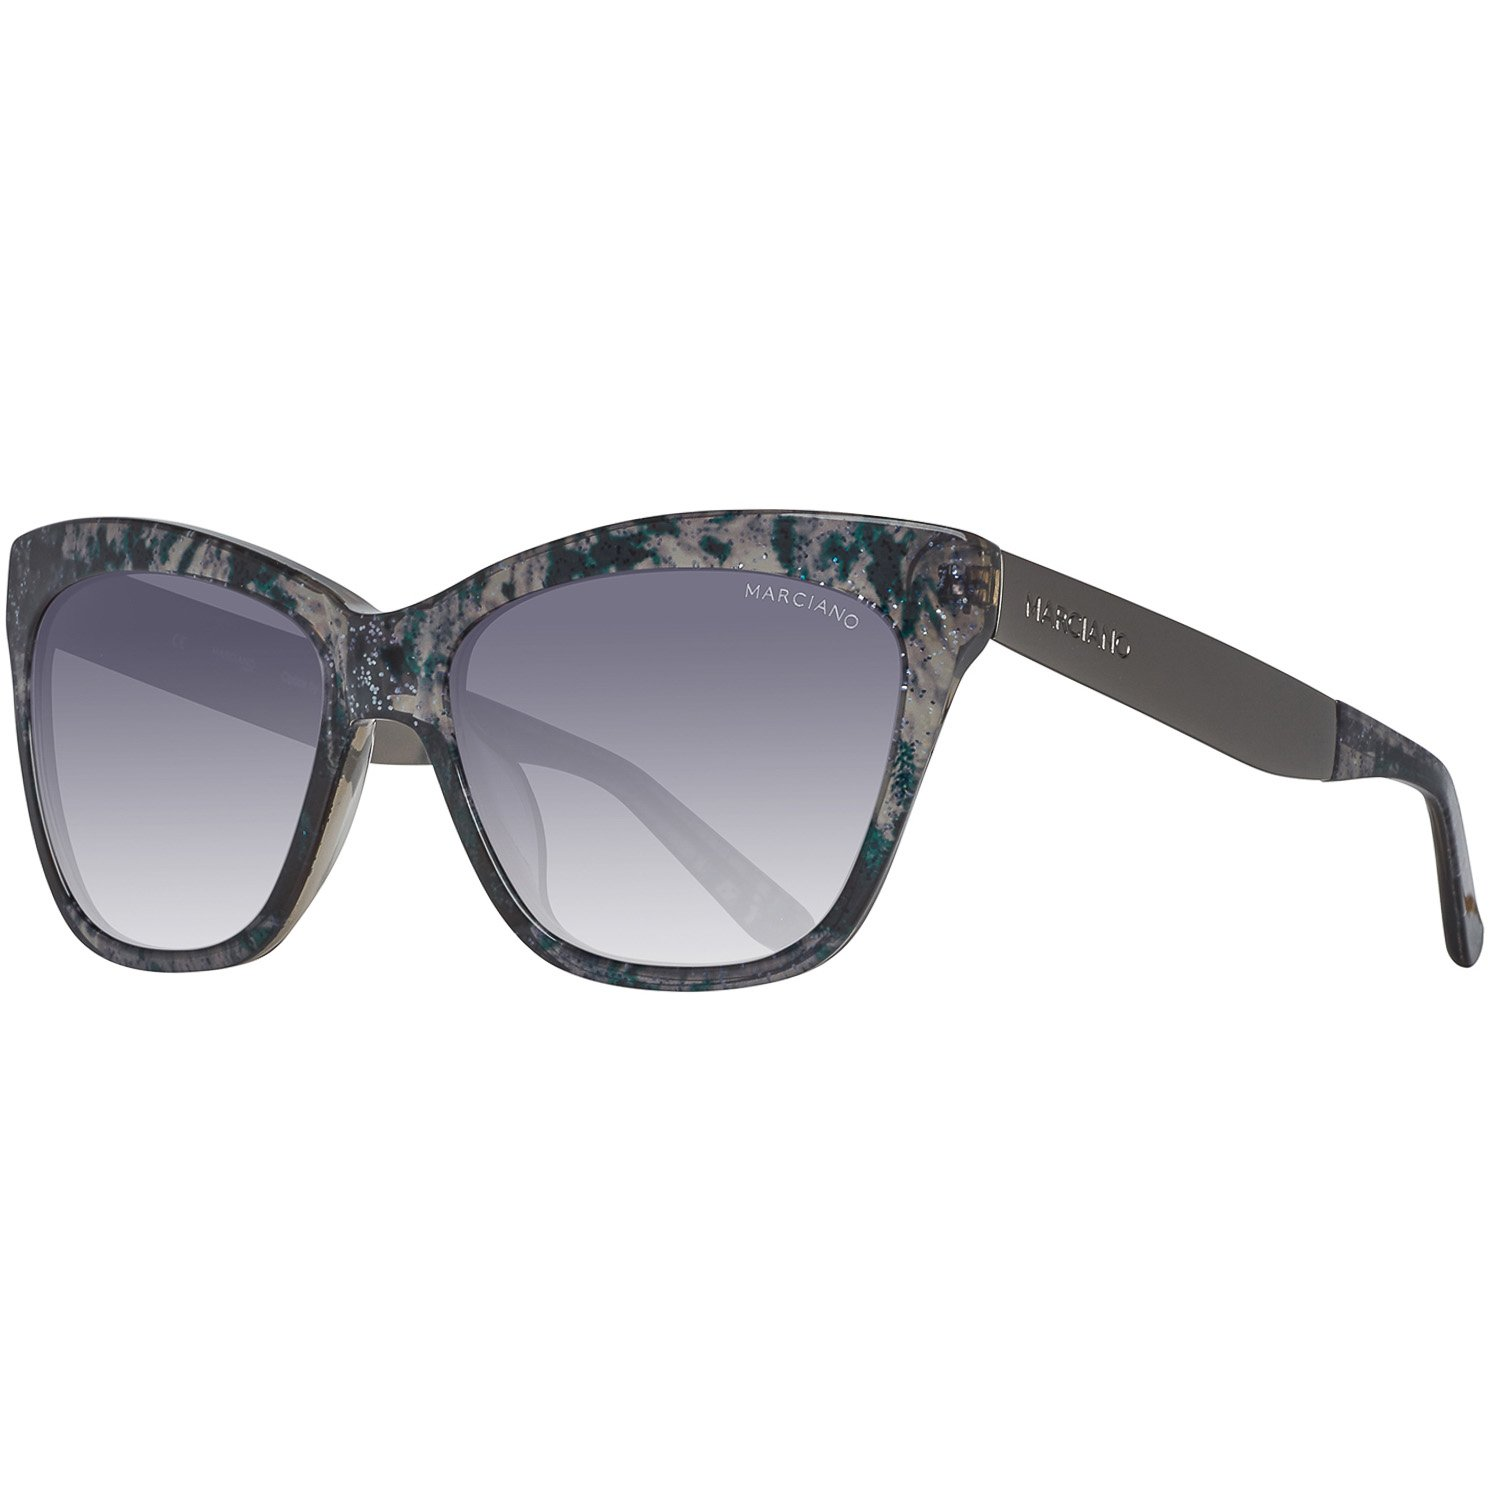 Guess By Marciano Women's Sunglasses Multicolor GM0733 5520B